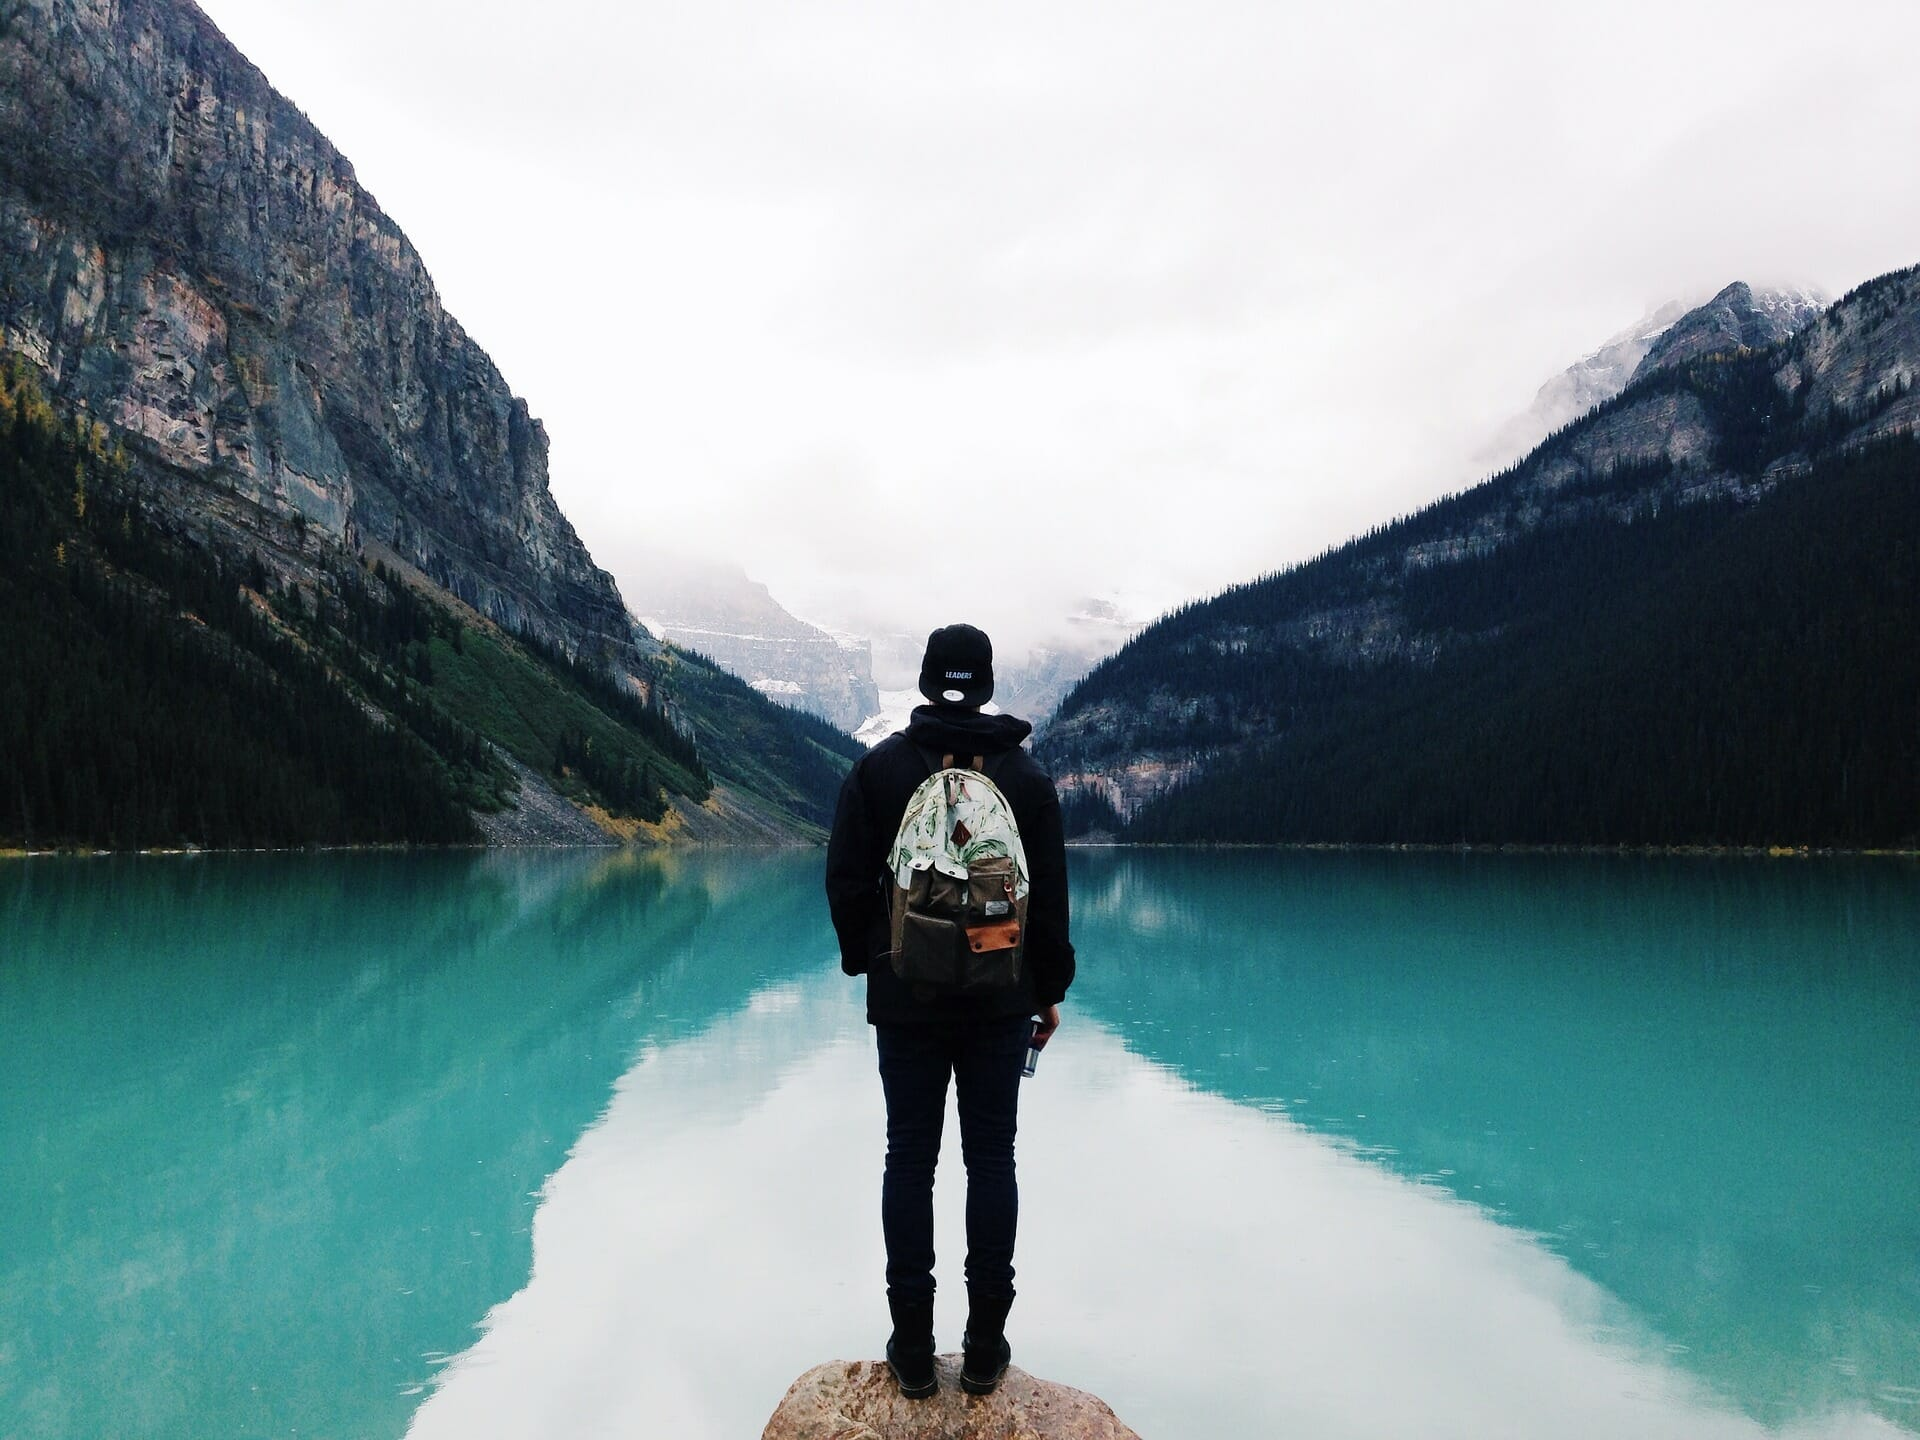 Man standing by lake with mountains in the distance.